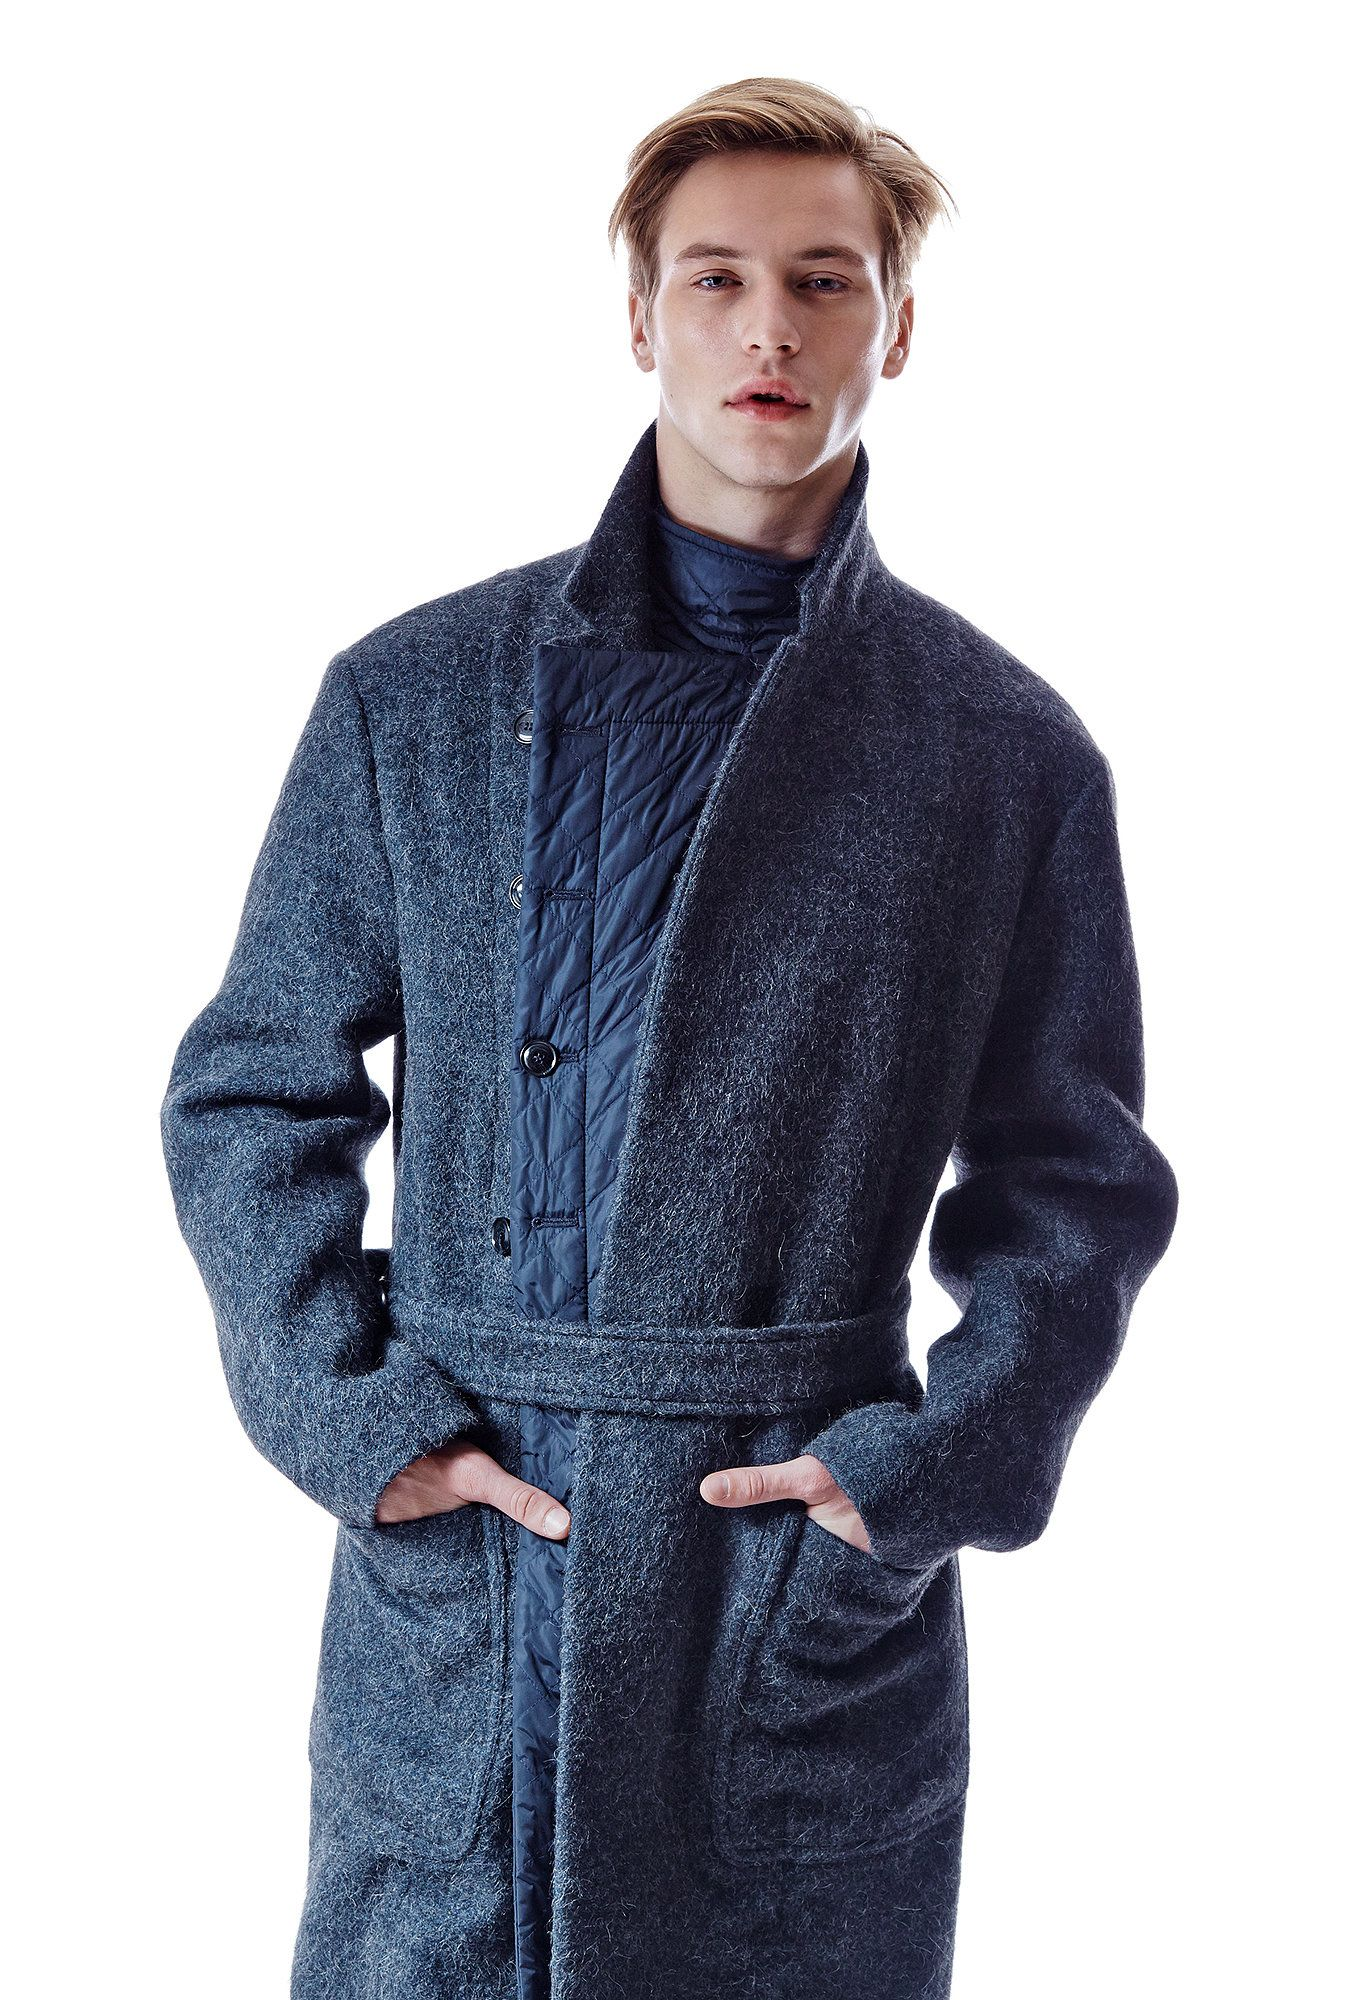 Dries Van Noten wool, alpaca and polyester coat, $2,540 at Bergdorf Goodman. (Photo: Jonathan Grassi for The New York Times)